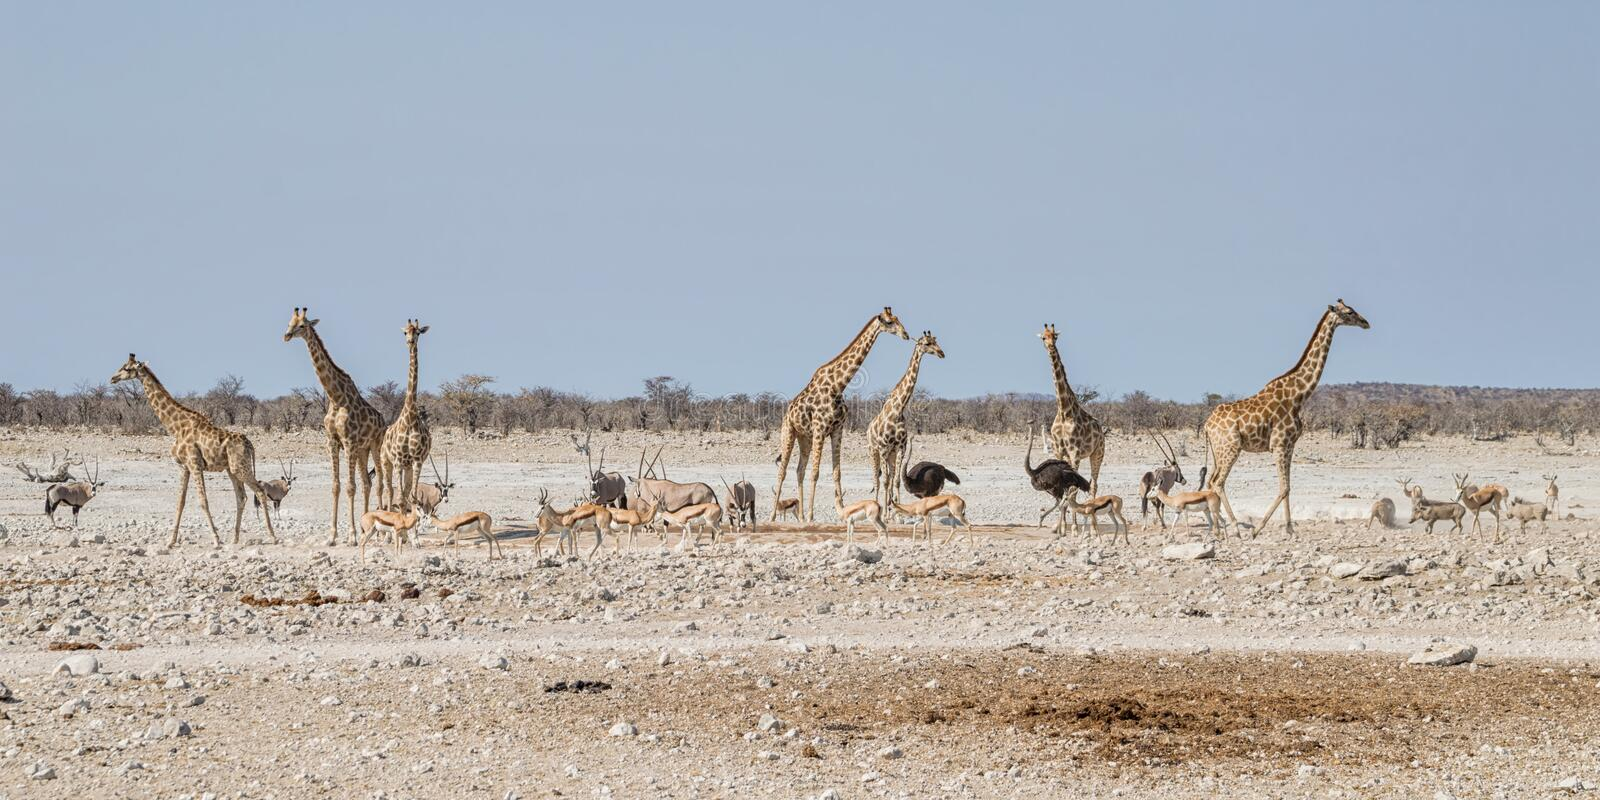 Busy Watering Hole. African wildlife at a busy watering hole in the Namibian savanna stock images